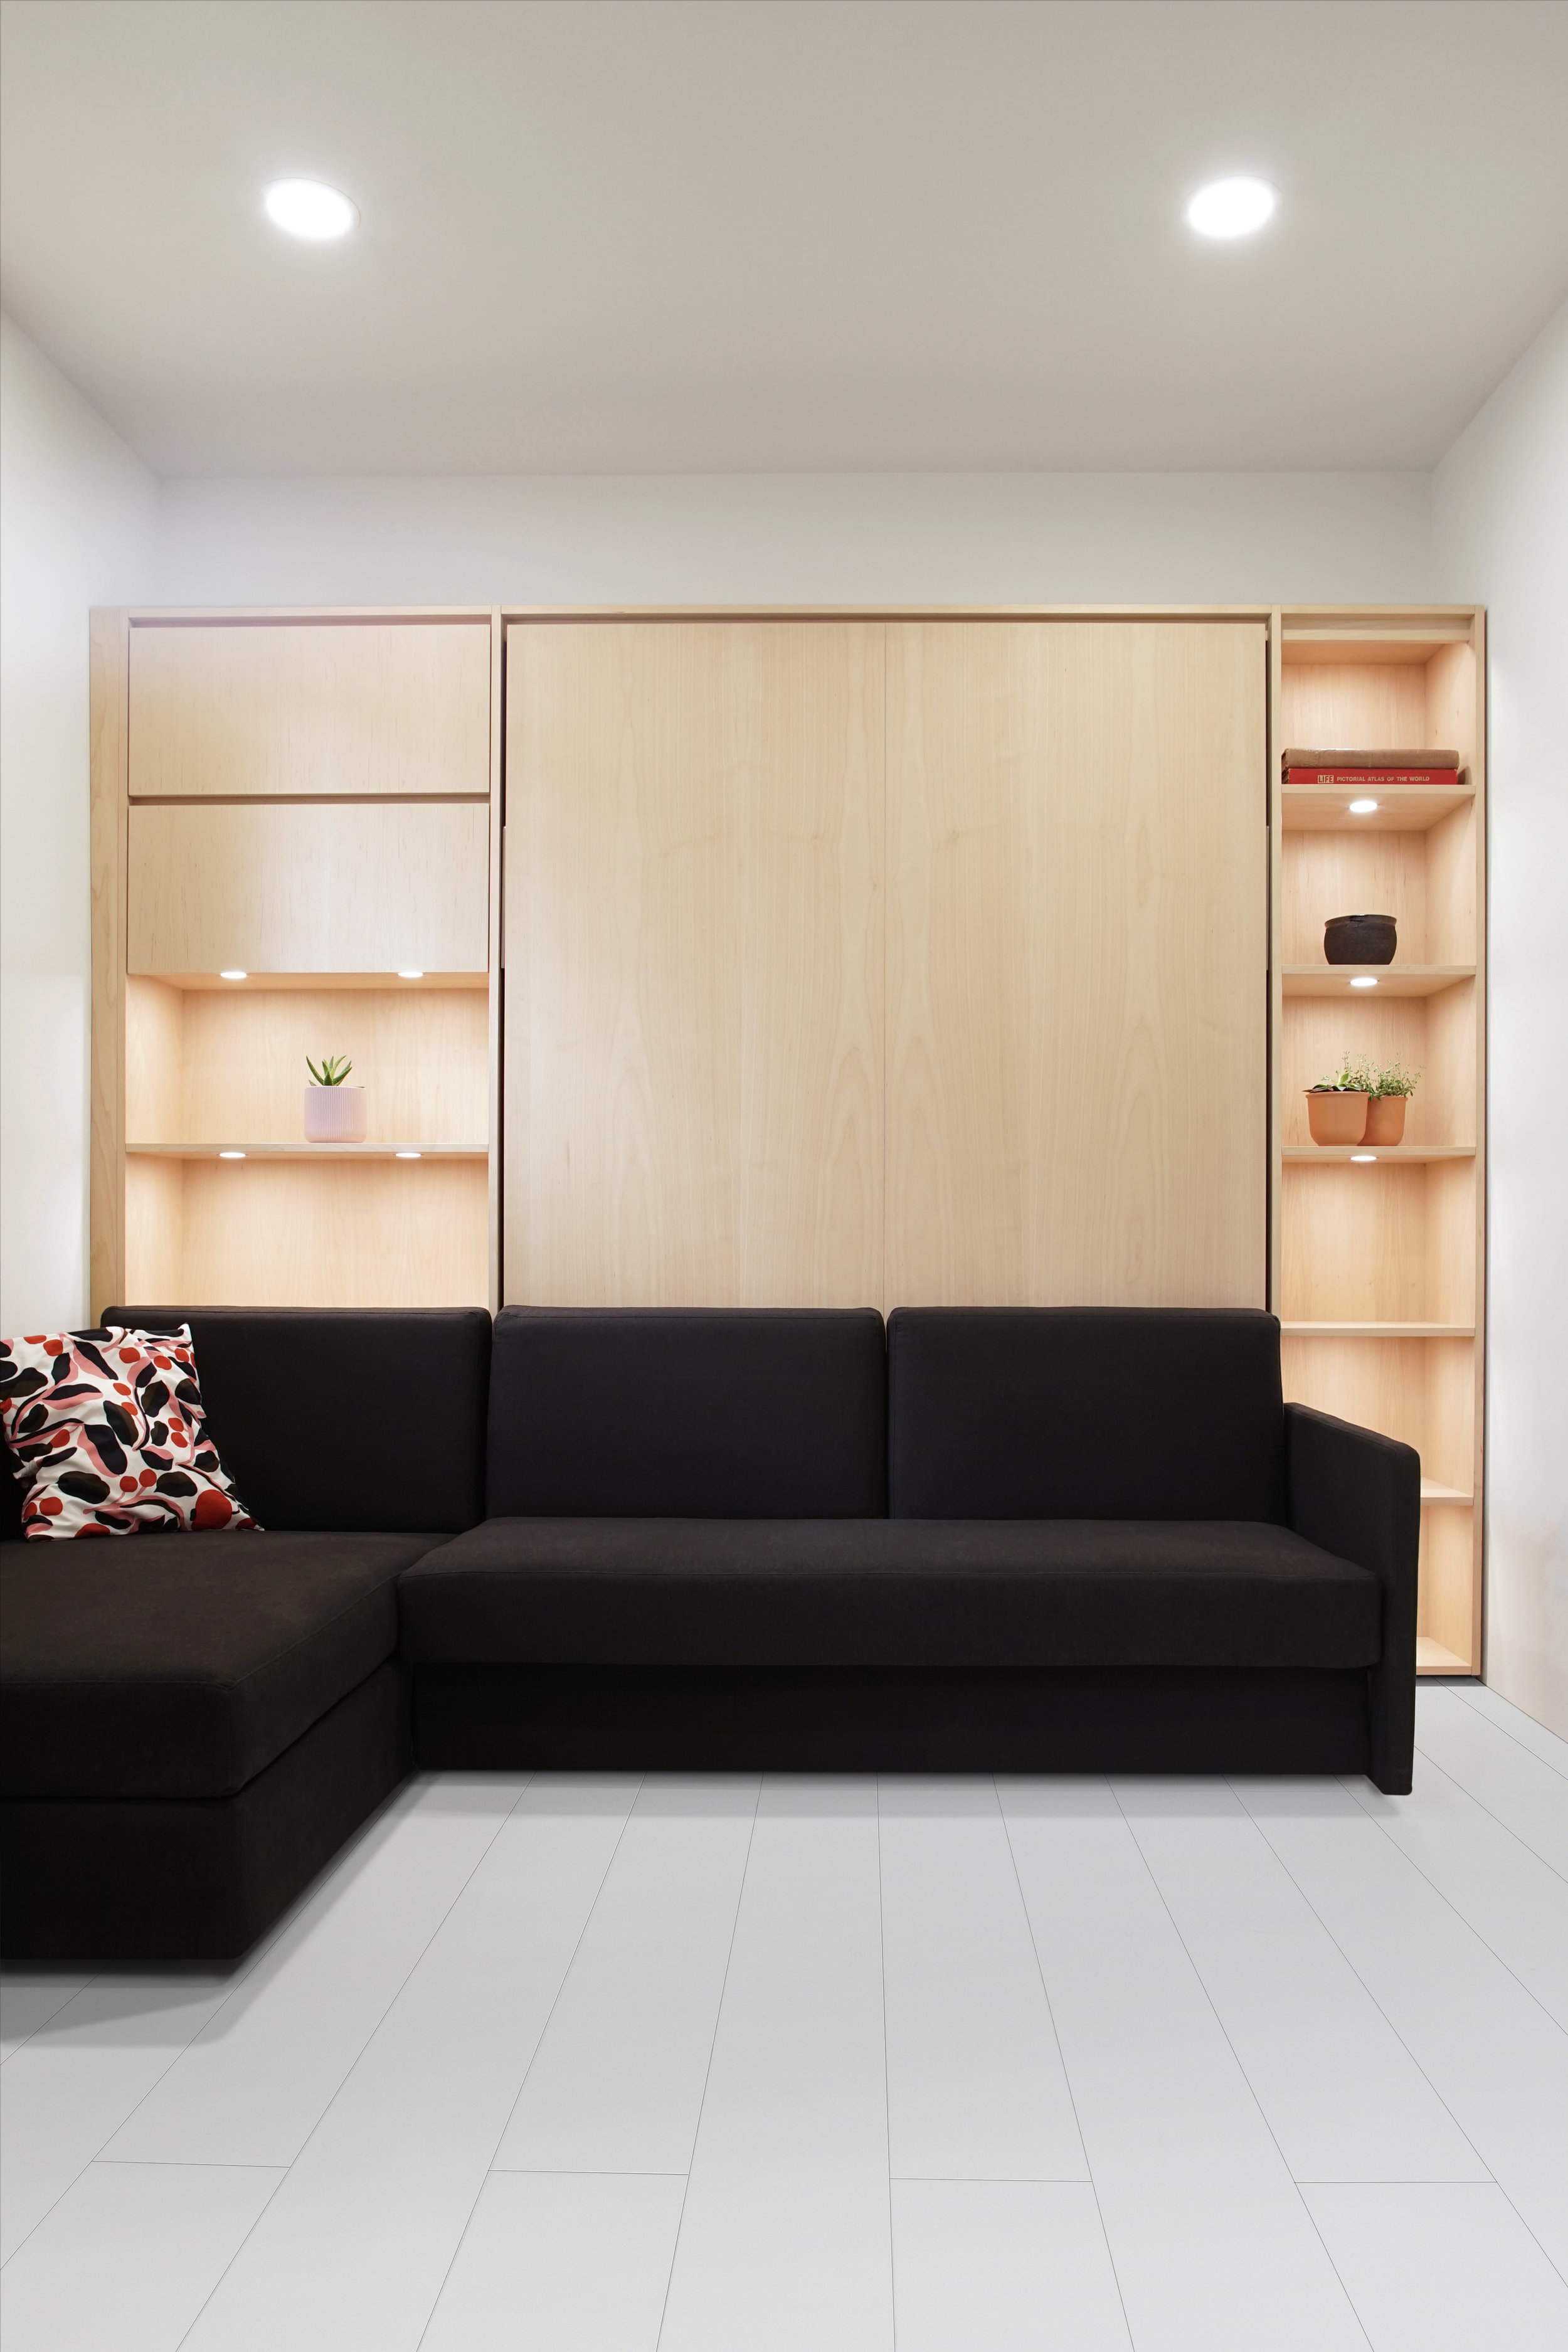 Wallbed Murphy bed Custom Millwork Built-in Cabinetry  Vancouver Anthill Studio Nexus.JPG